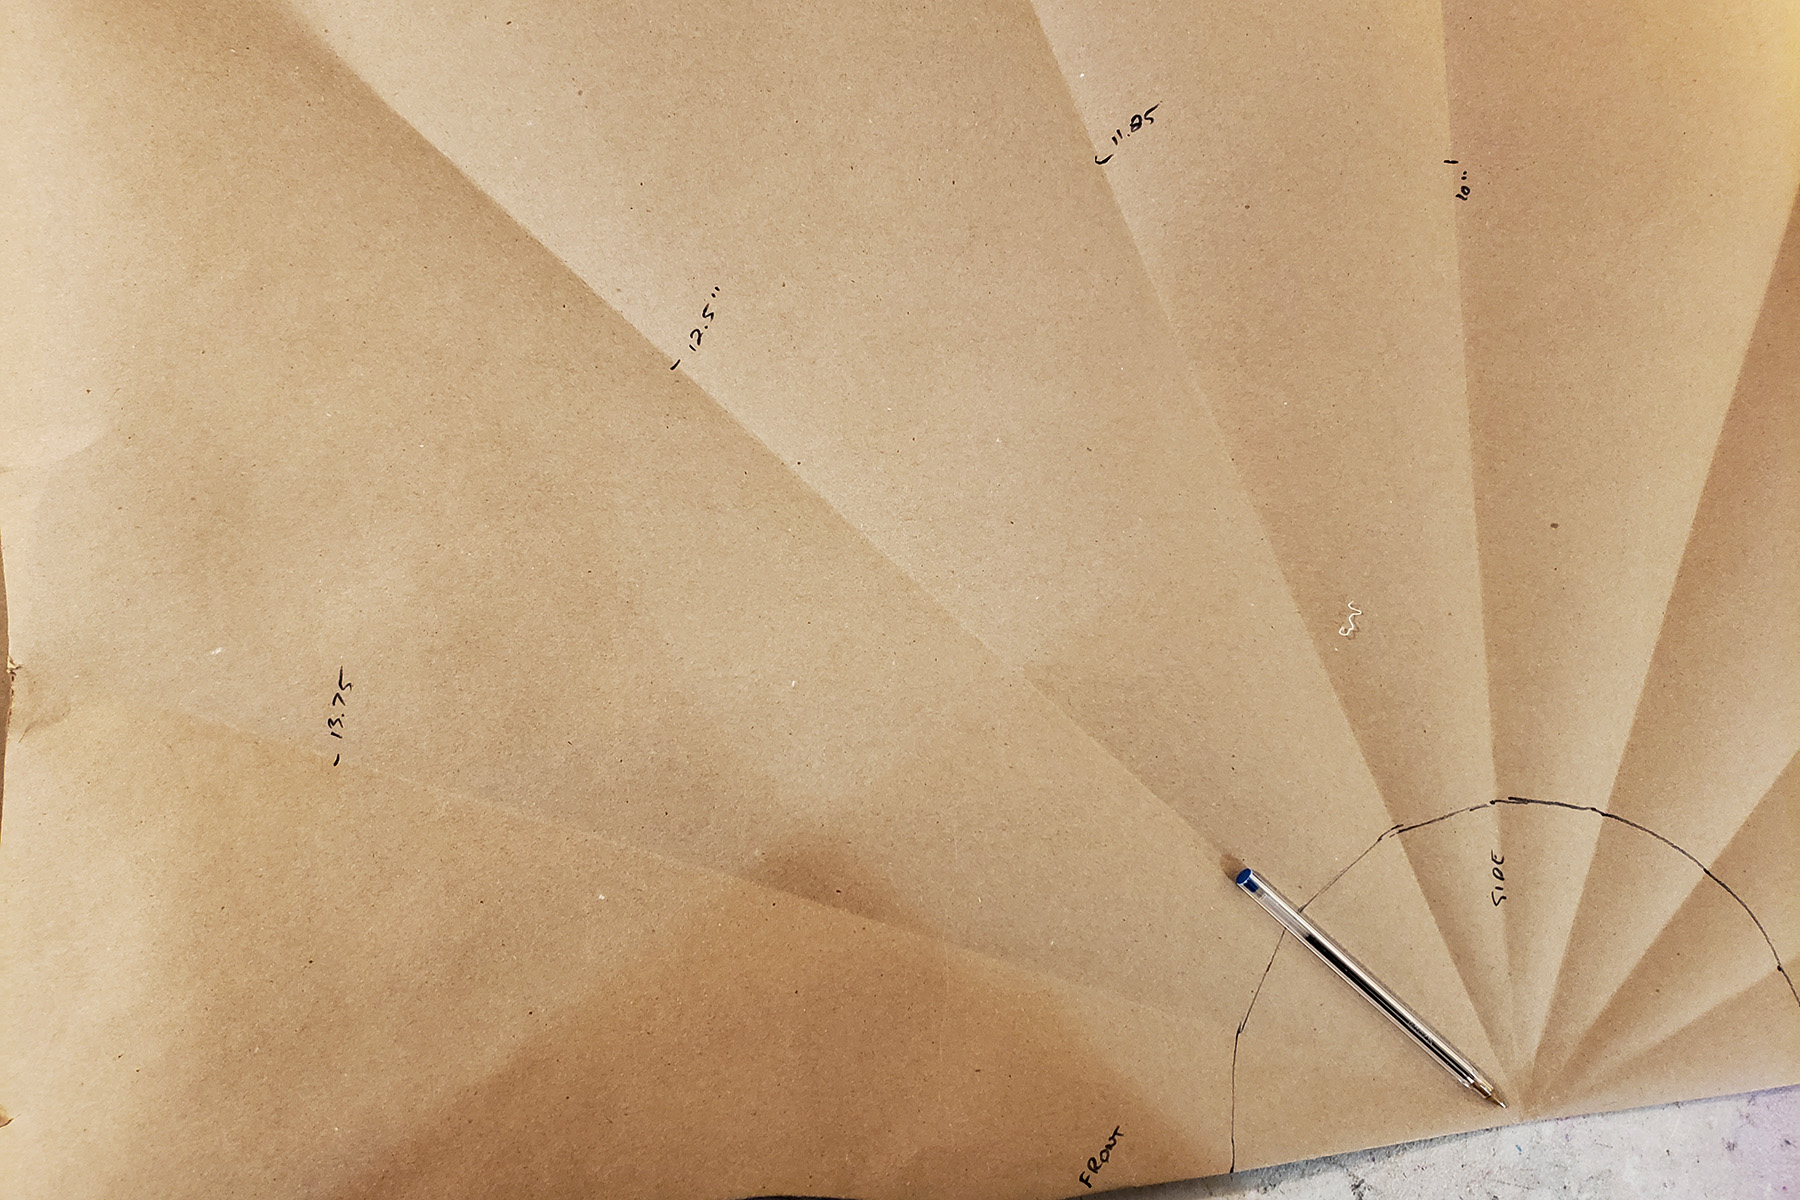 A circle skirt is being drawn over all of the marked points on a piece of brown craft paper.